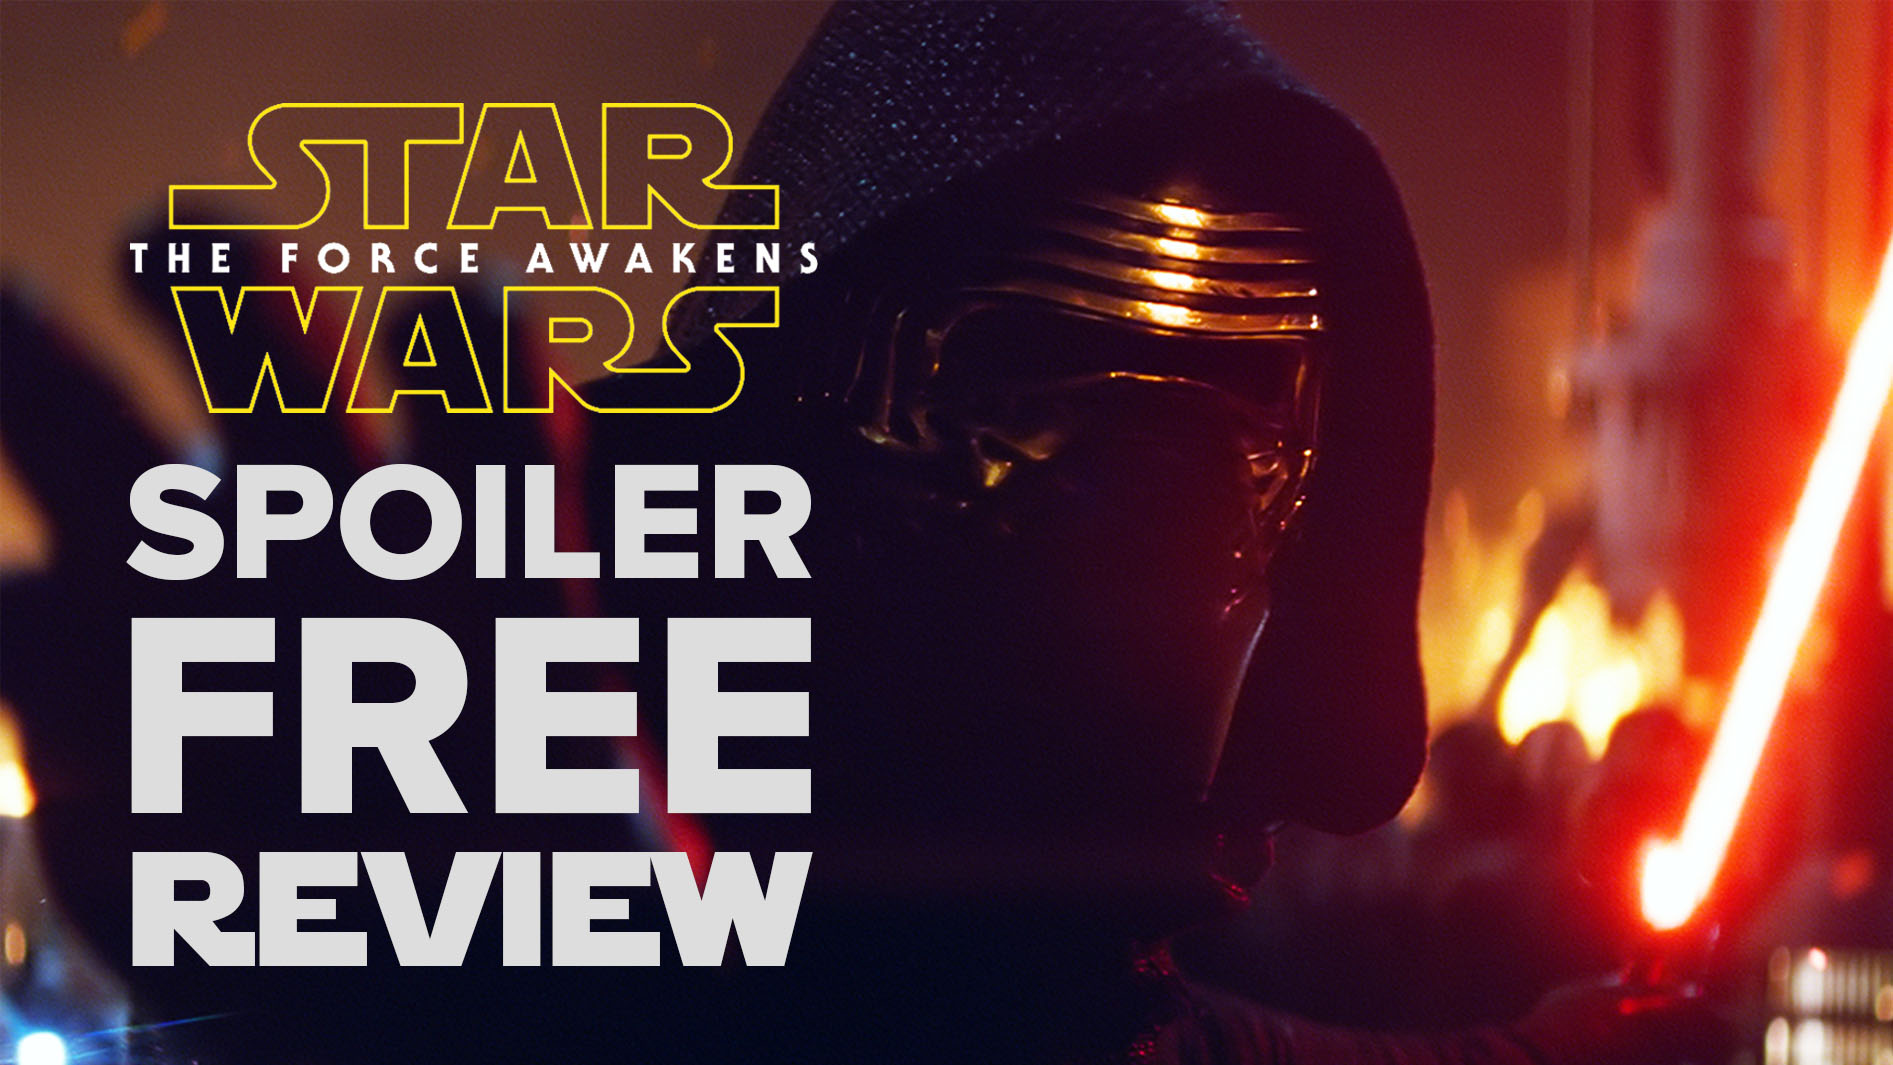 Video: 'Star Wars: The Force Awakens' spoiler-free review